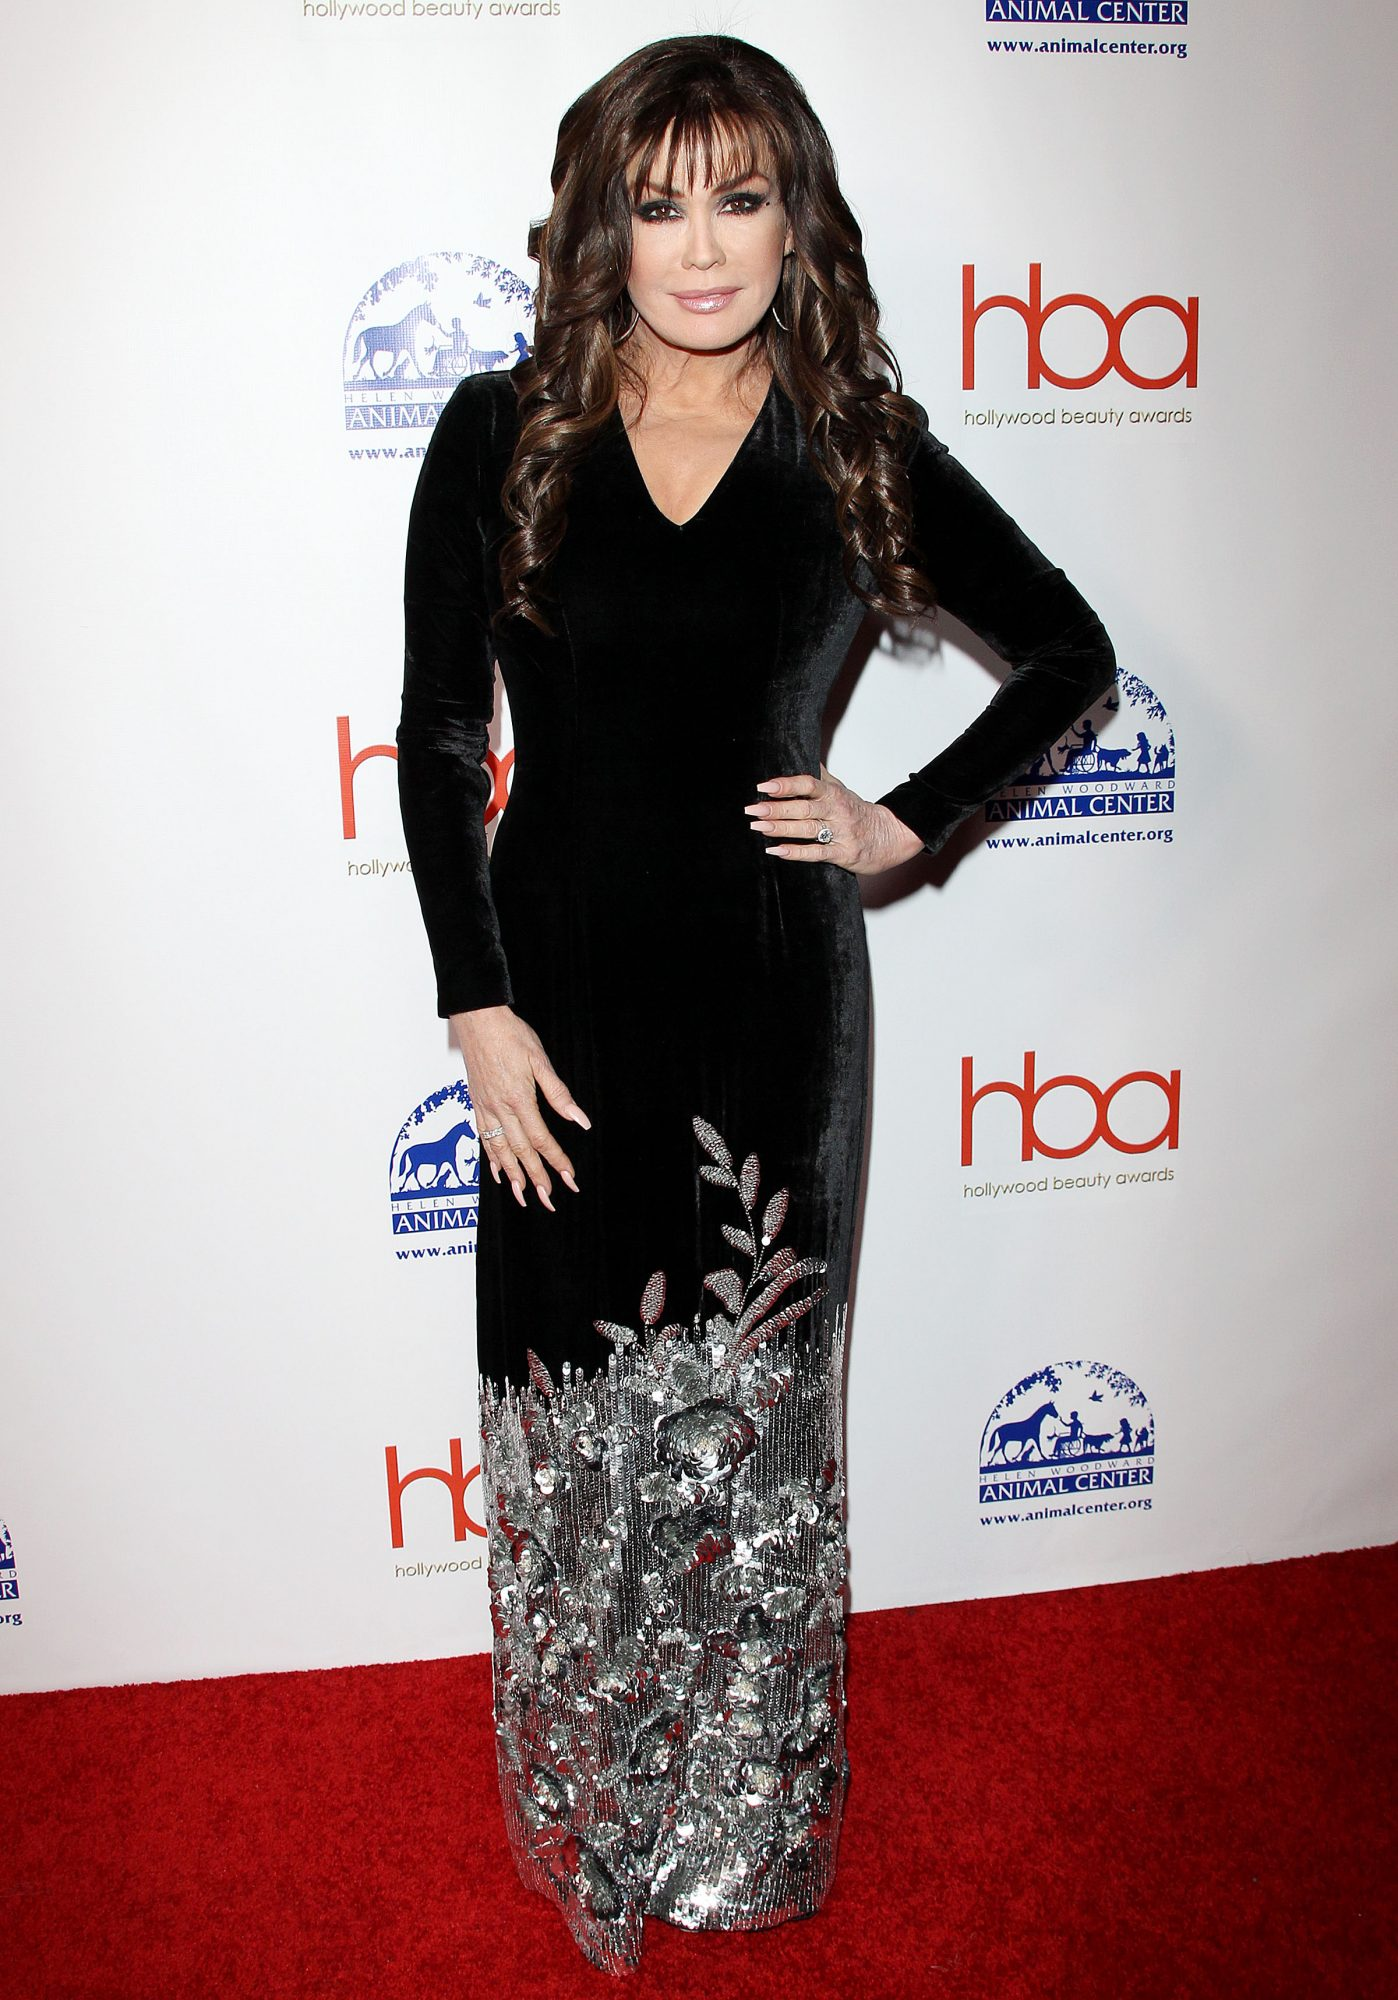 Marie Osmond Remembers Being Body-Shamed as a Teenager: 'I Would Literally Starve Myself'